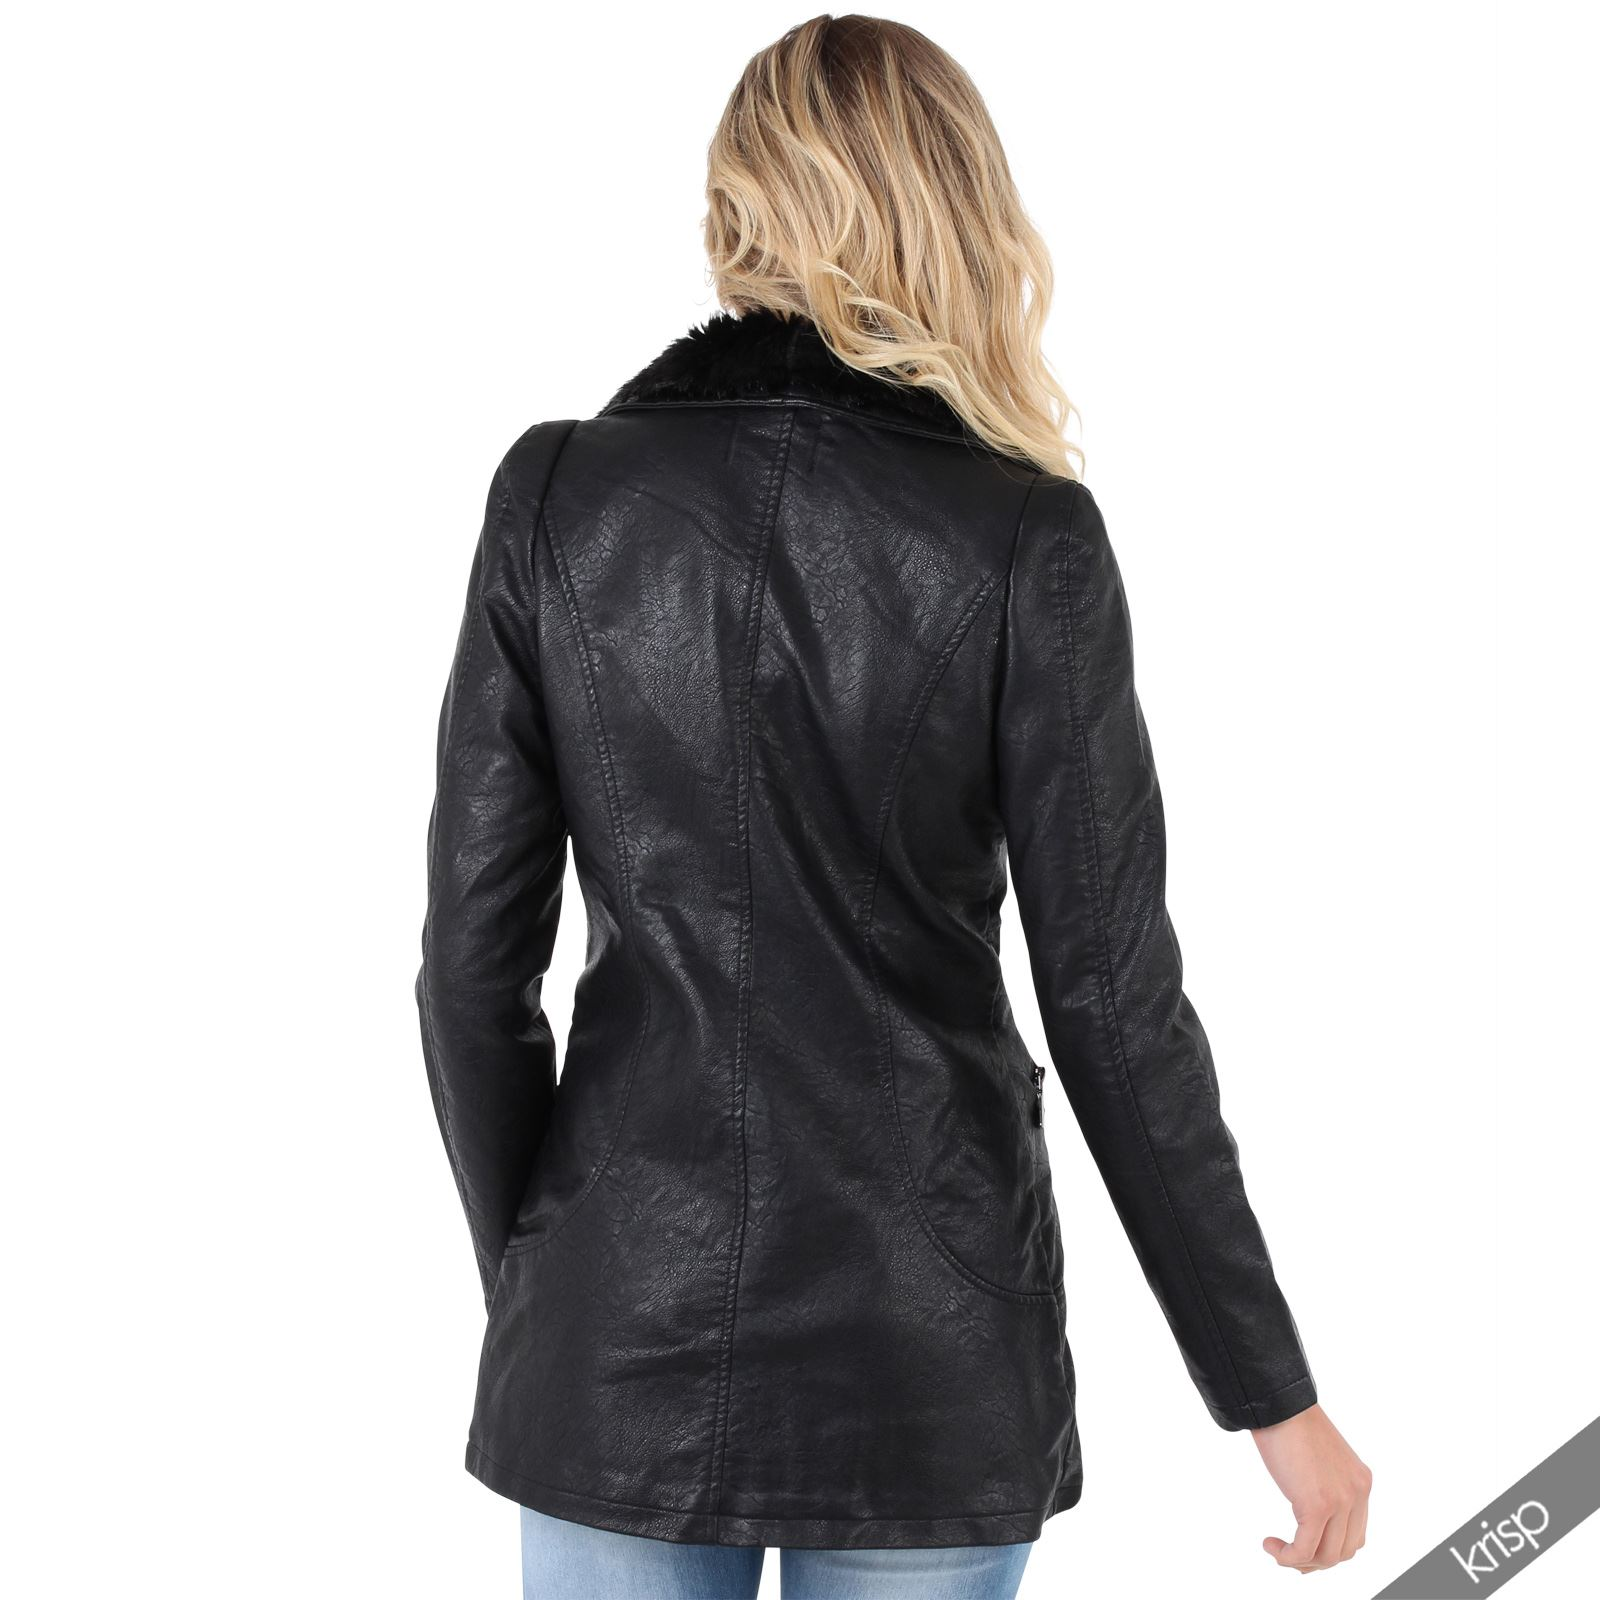 damen fellkragen lederjacke biker jacke parka bergangsjacke kurzer mantel neu ebay. Black Bedroom Furniture Sets. Home Design Ideas